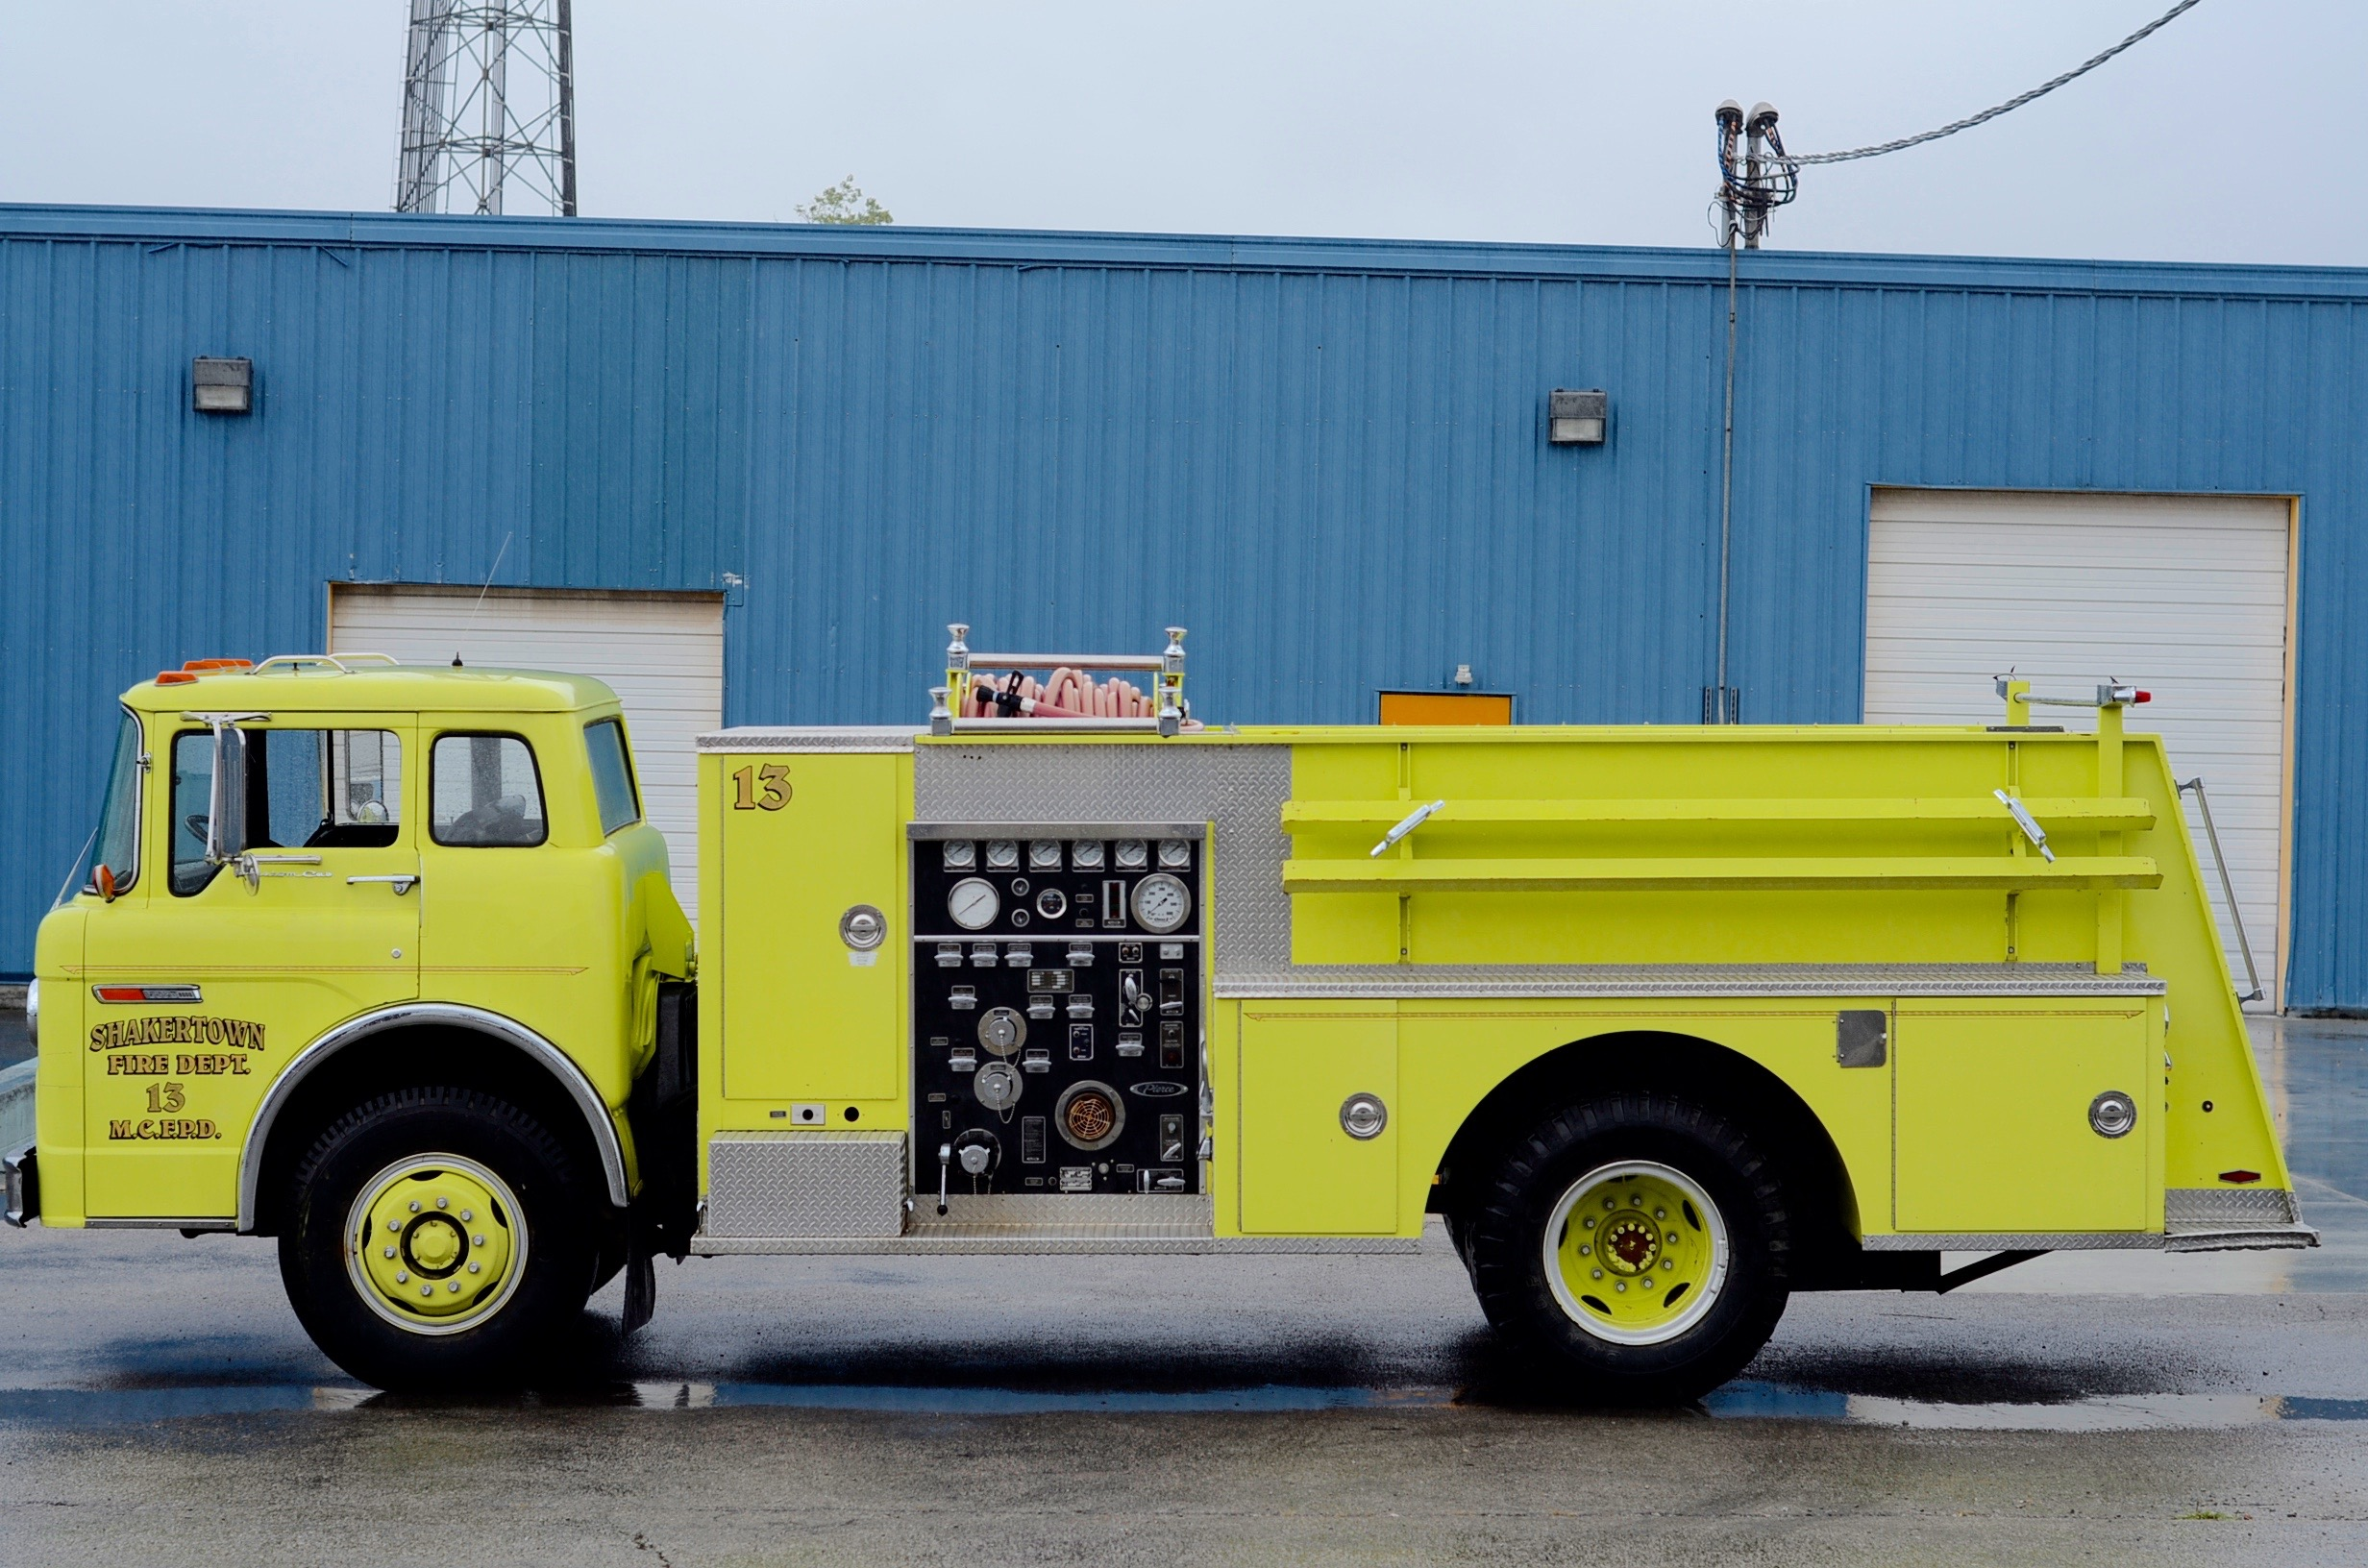 1985 Ford Chartreuse Fire Truck